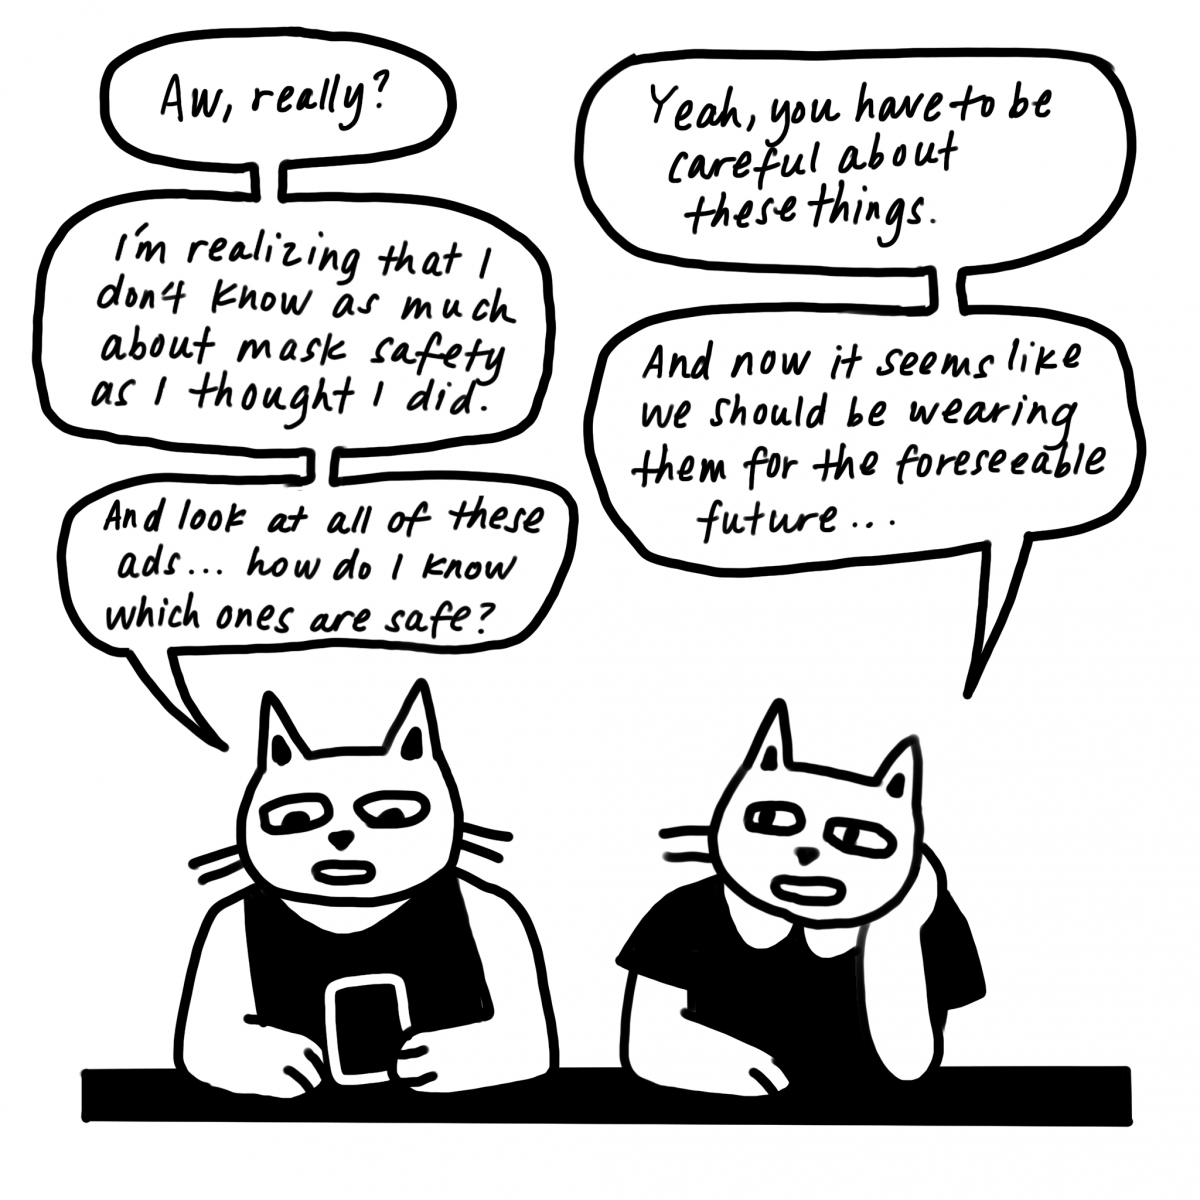 """A conversation between the cats. """"I'm realizing I don't know as much about mask safety as I thought I did,"""" says the cat with the phone. """"And look at all these ads ... how do I know which ones are safe?"""""""